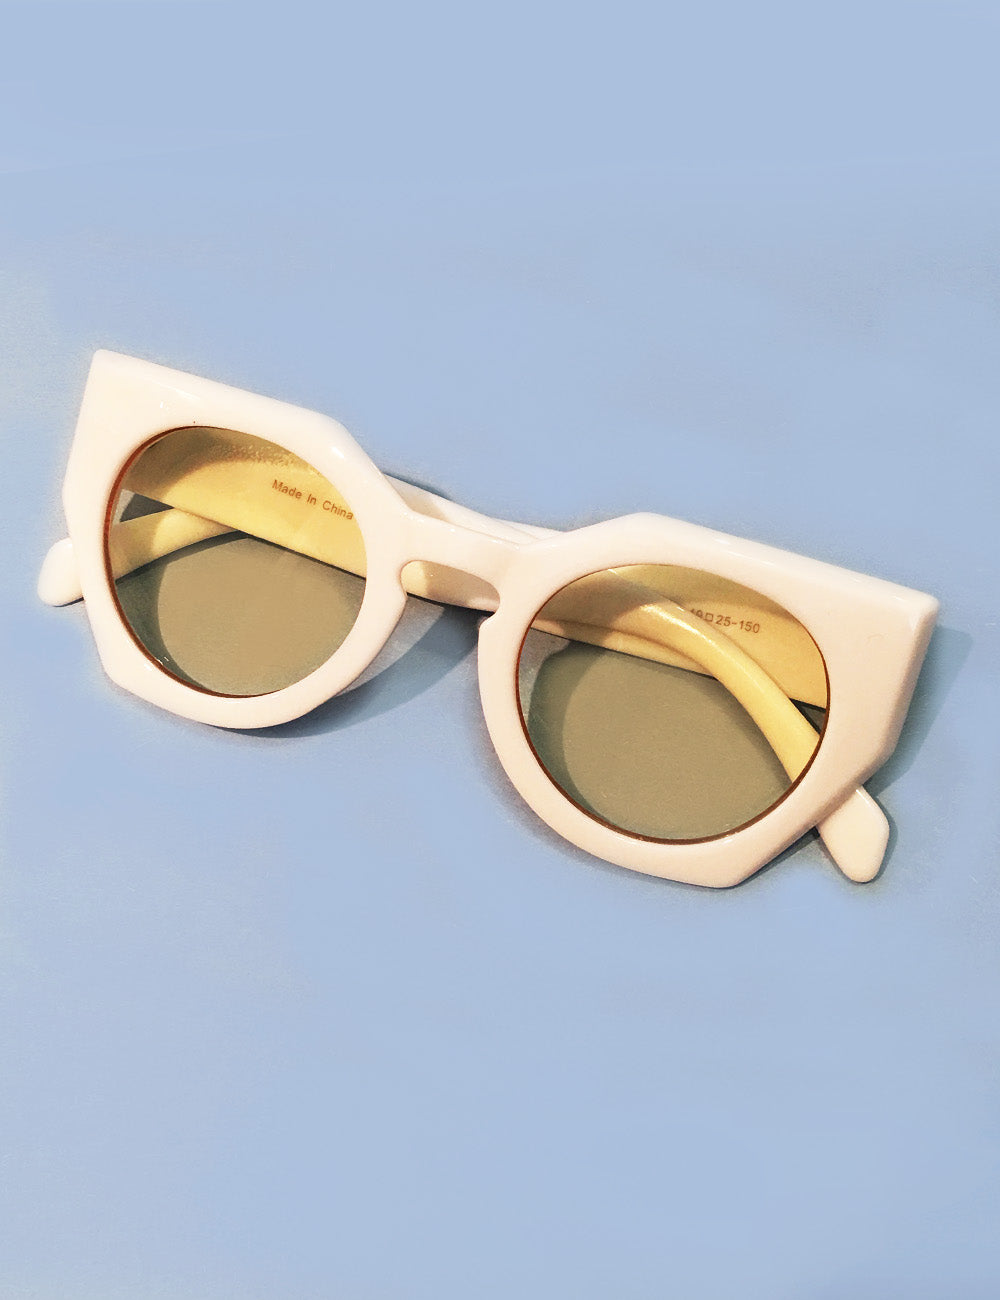 White Framed Yellow Lens 1960s Inspired Geometric Sunglasses